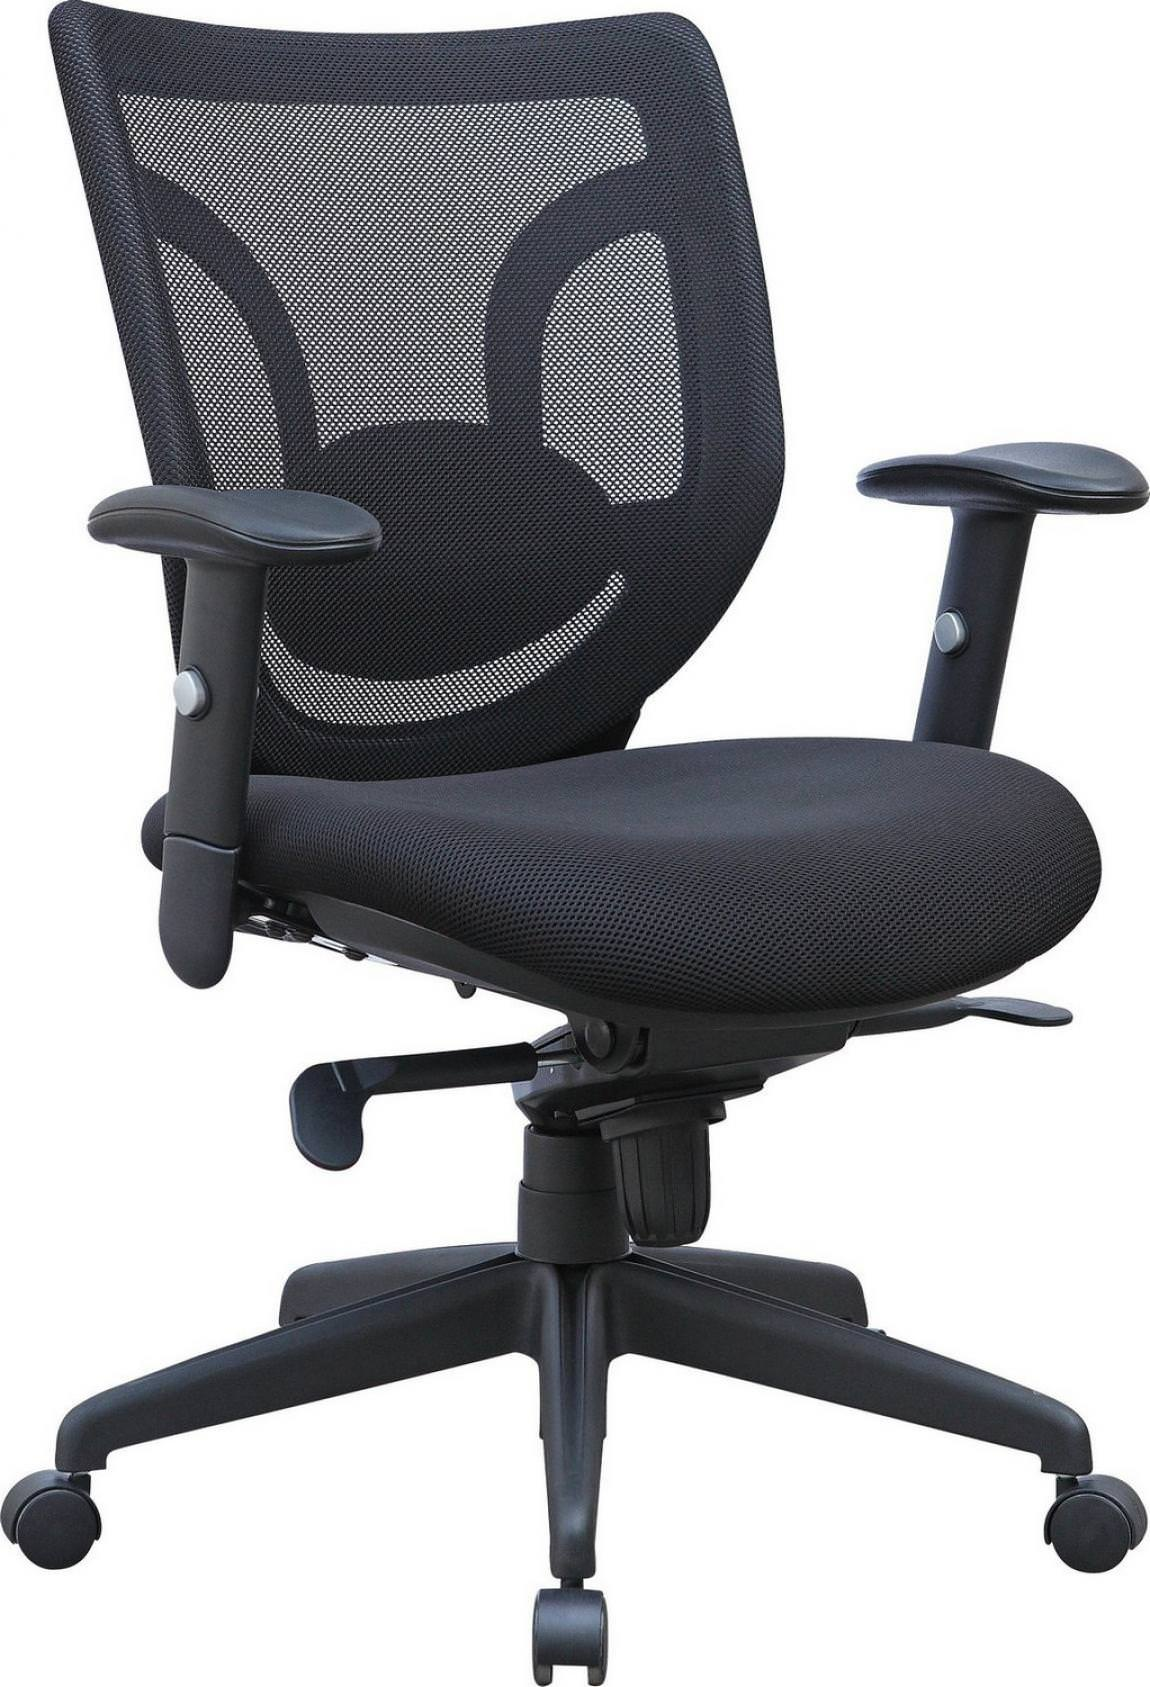 Back Support Chair Images Of Mesh Back Computer Chair With Lumbar Support